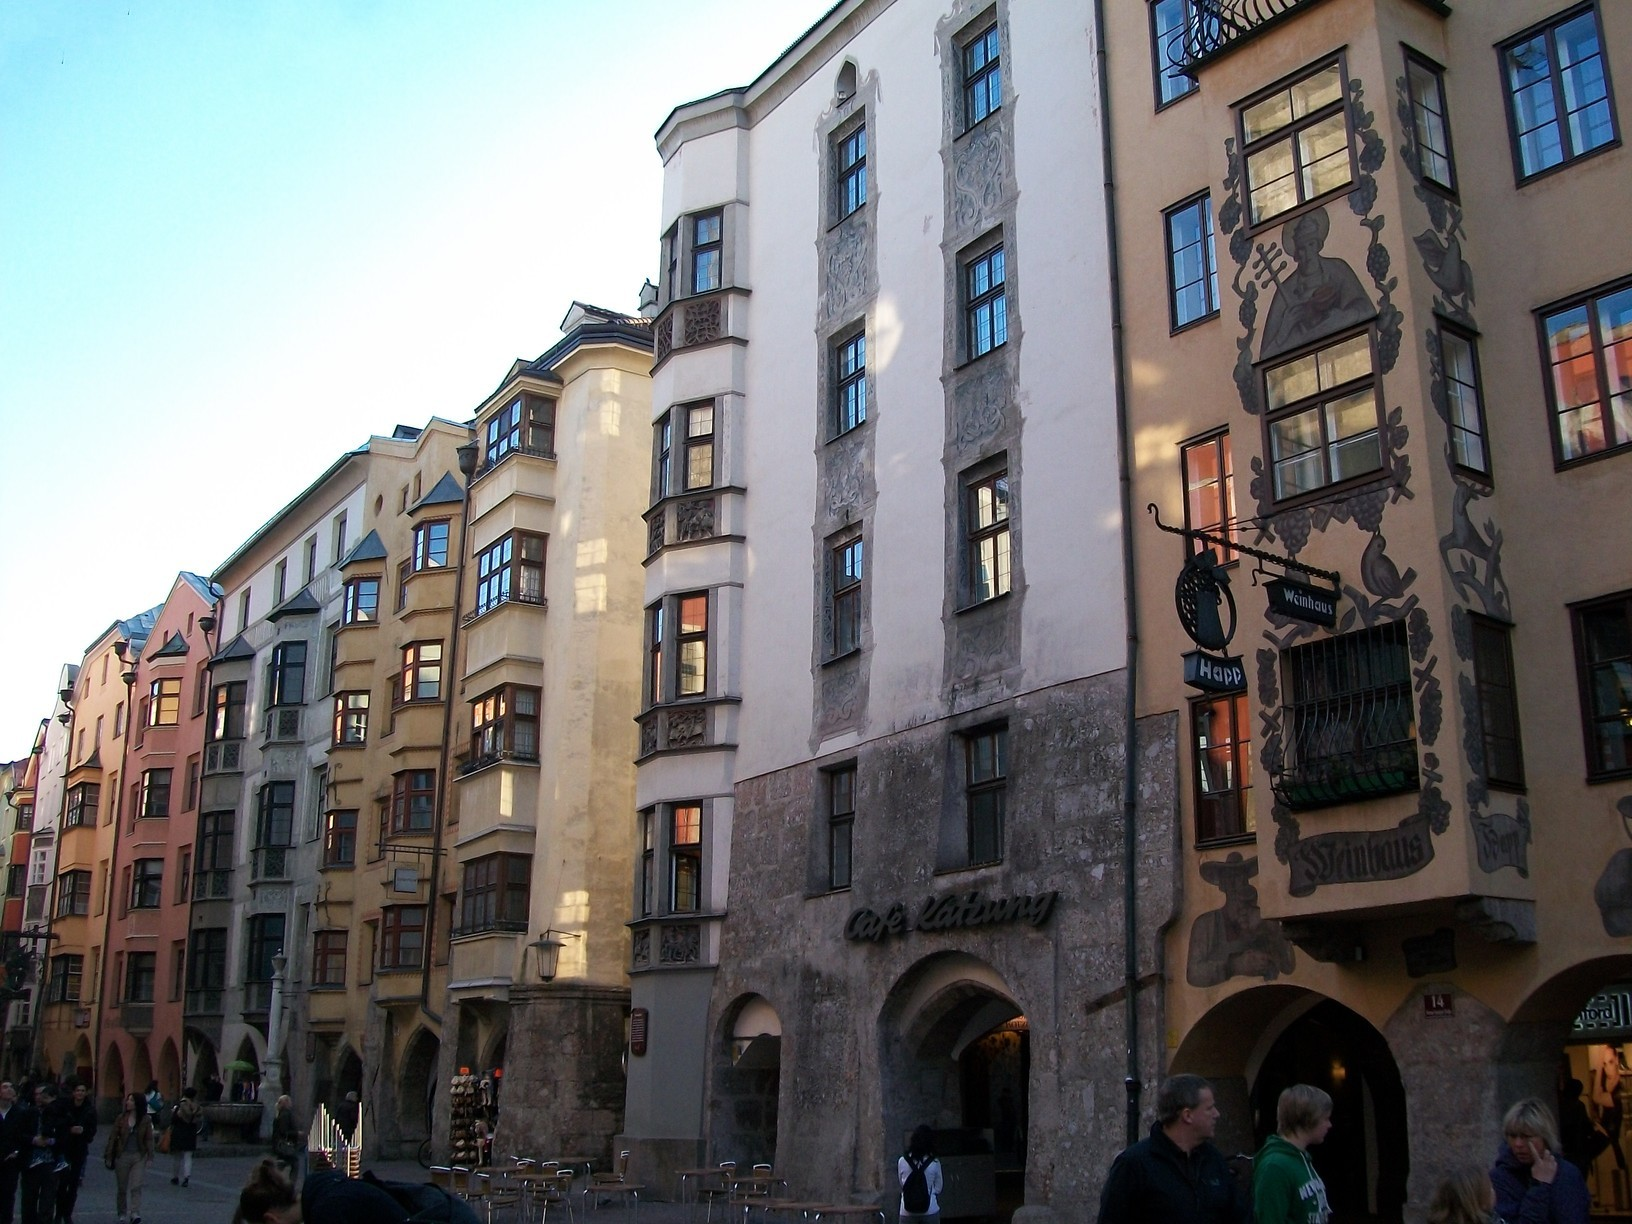 Buildings in Innsbruck's Altstad (literally Old Town) still look like they might have several centuries ago.